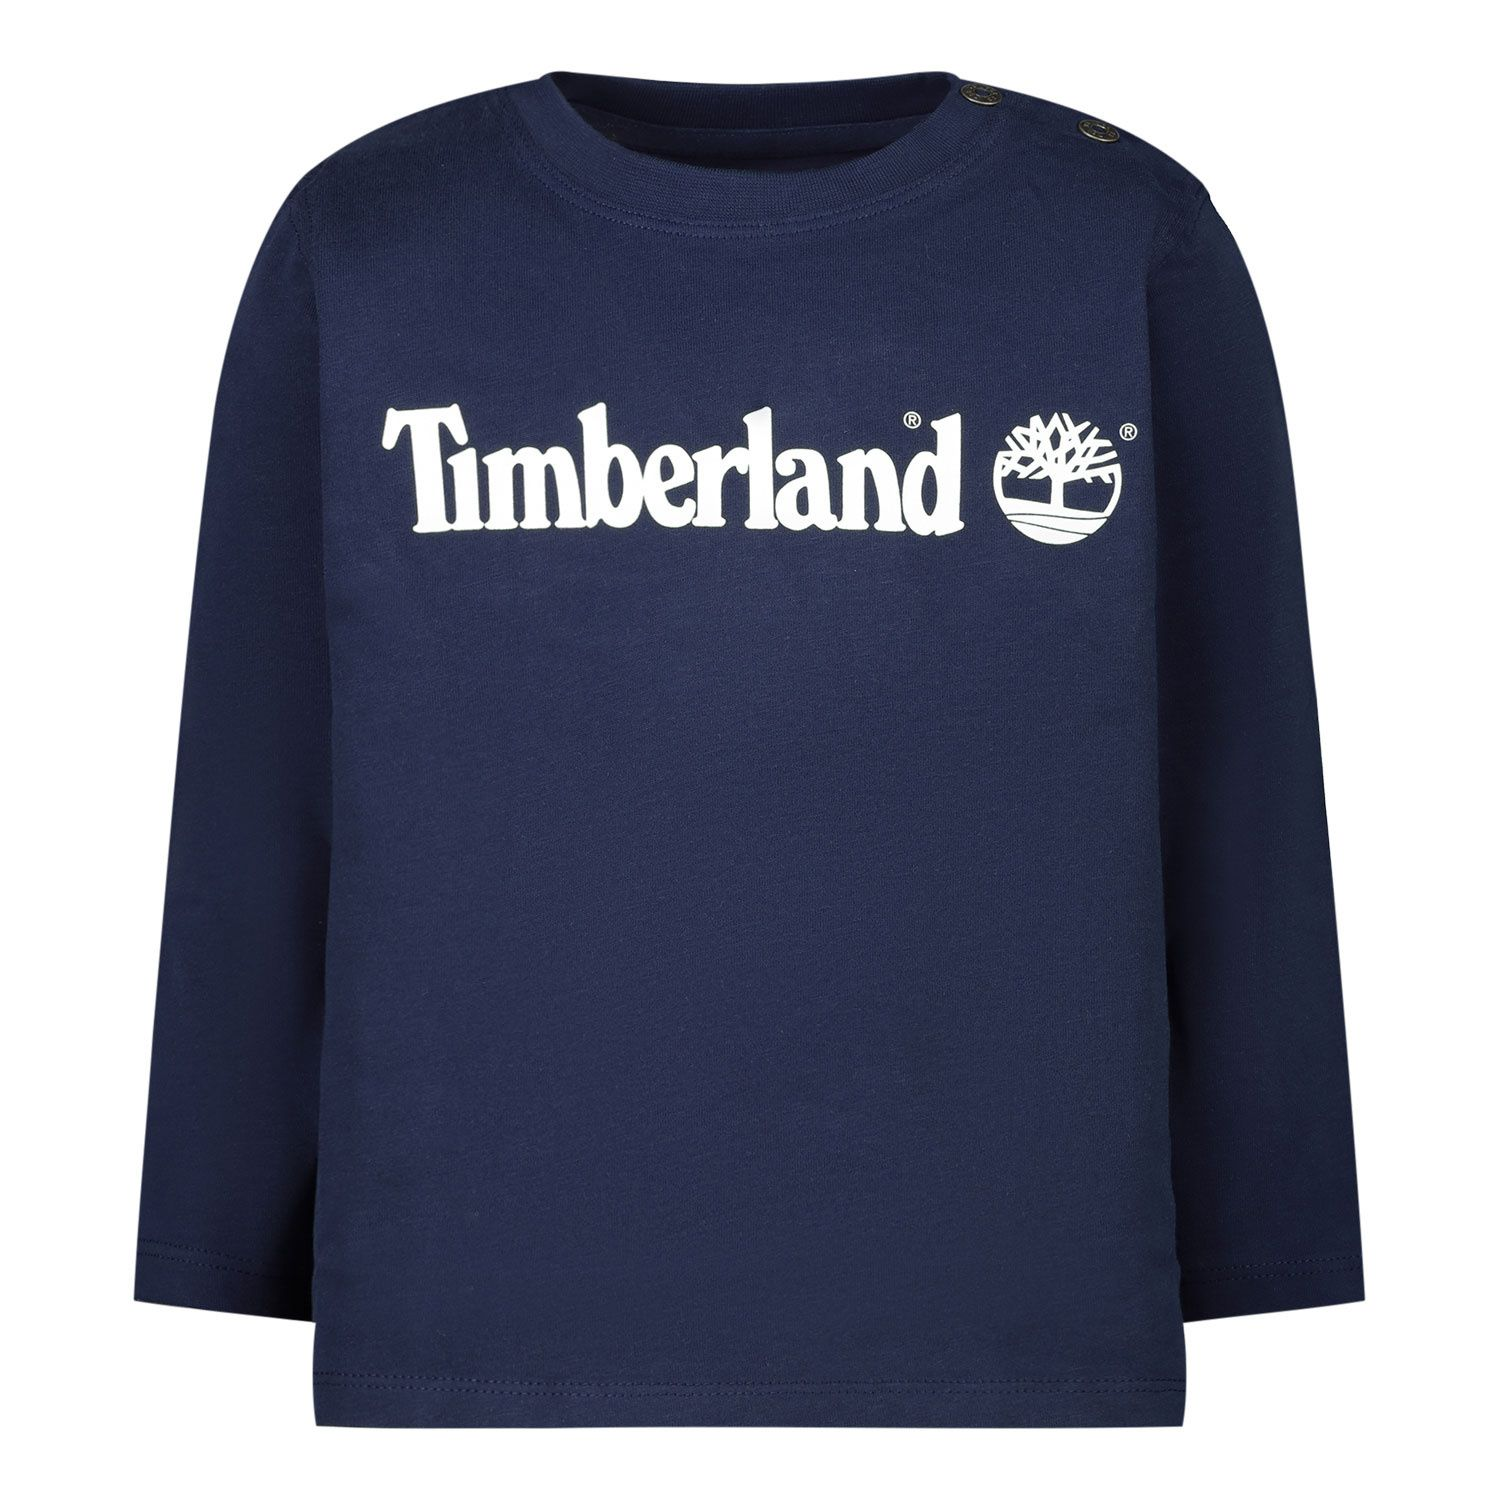 Picture of Timberland T05J76 baby shirt navy